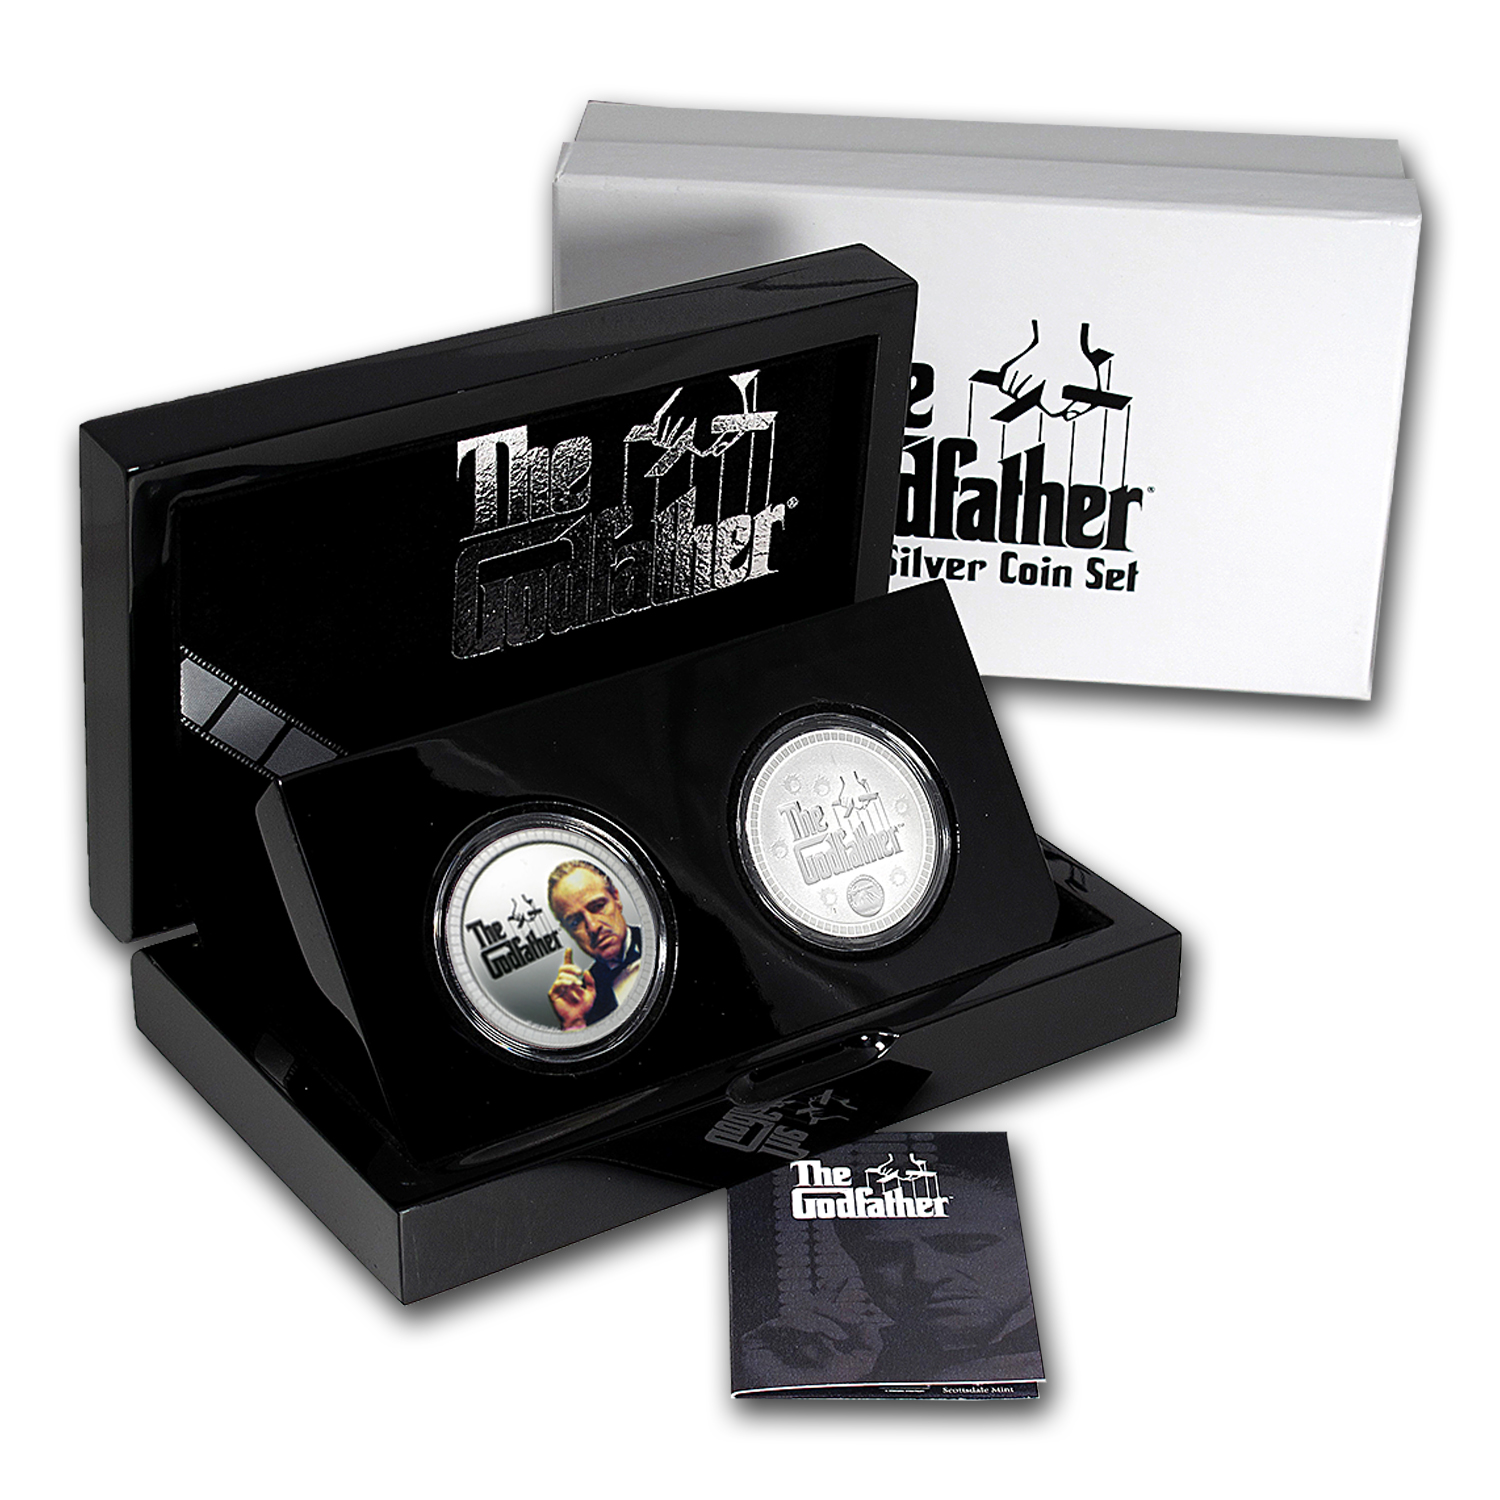 2 oz Silver Coin Set - The Godfather